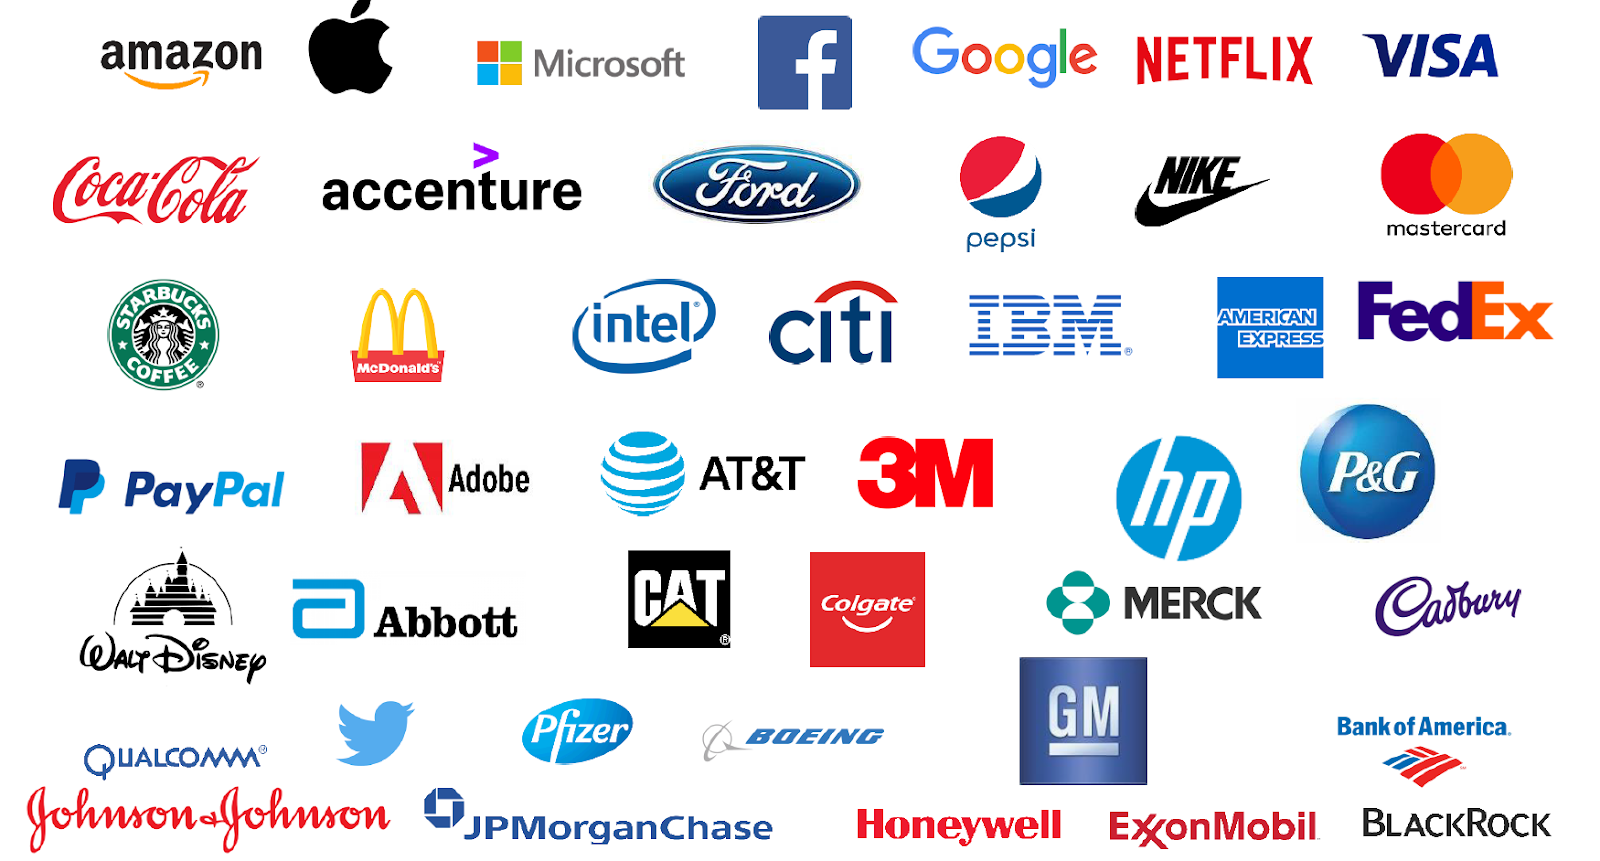 The S&P 500 constitutes companies with some of the most recognizable brands in the world